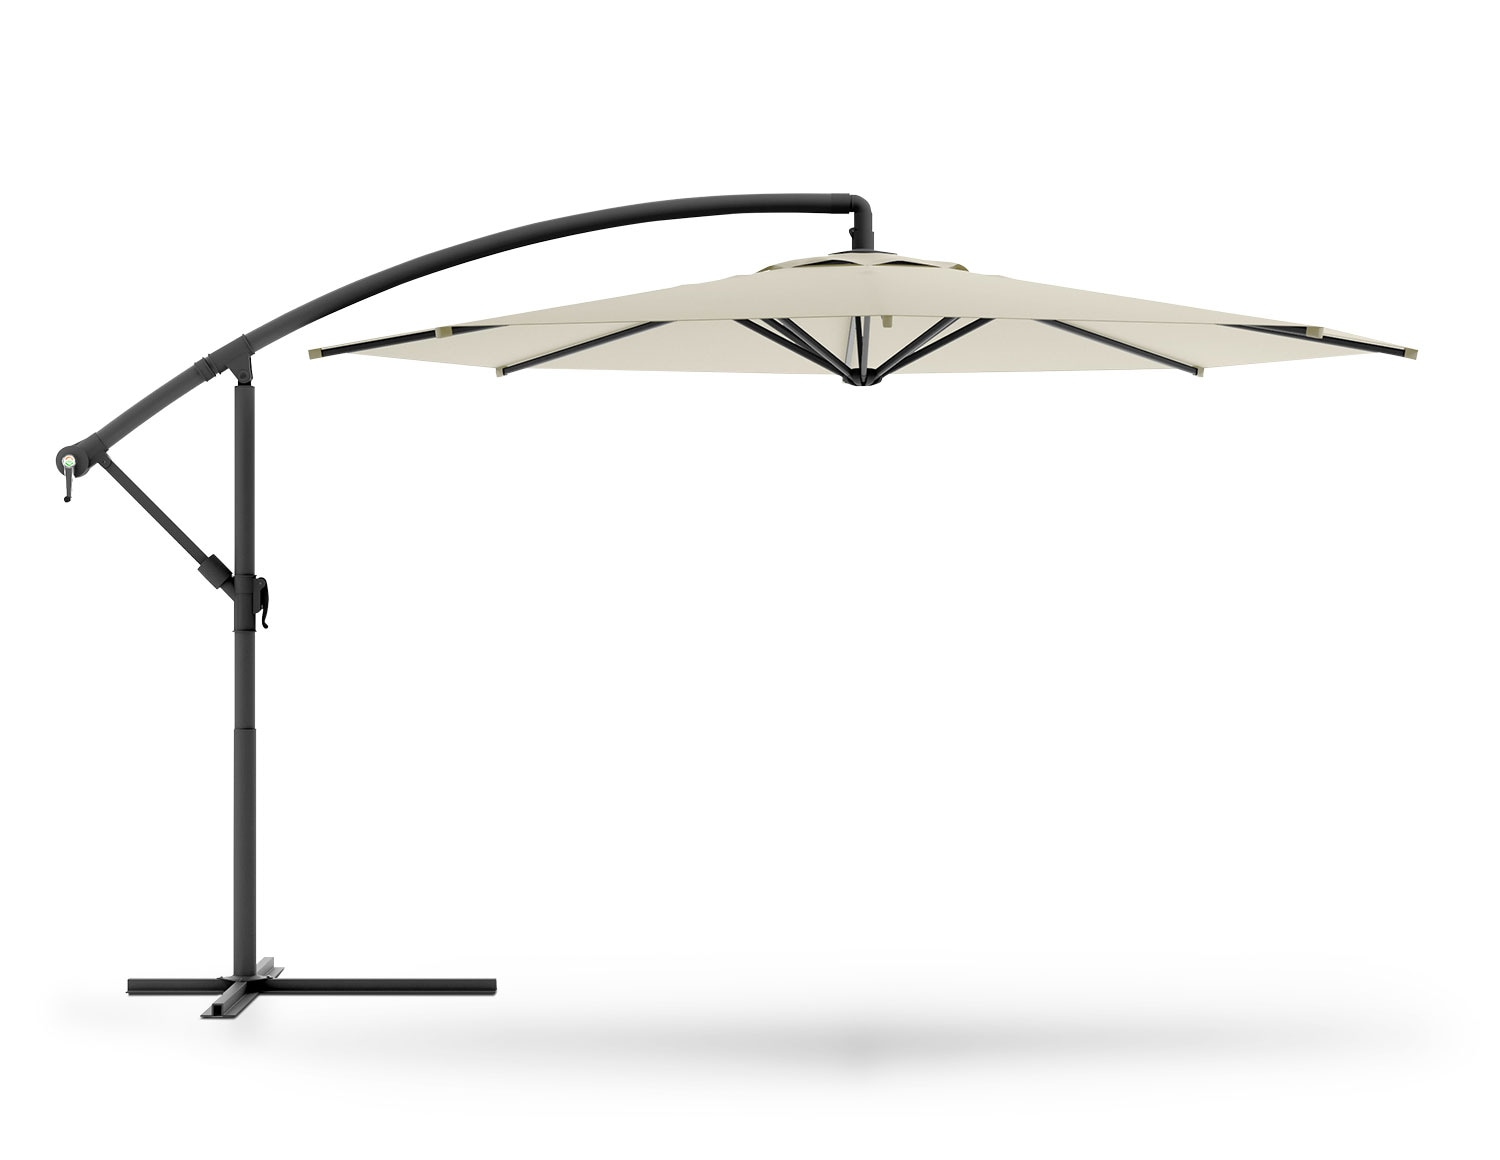 Outdoor Furniture - Perry Offset Umbrella - Warm White